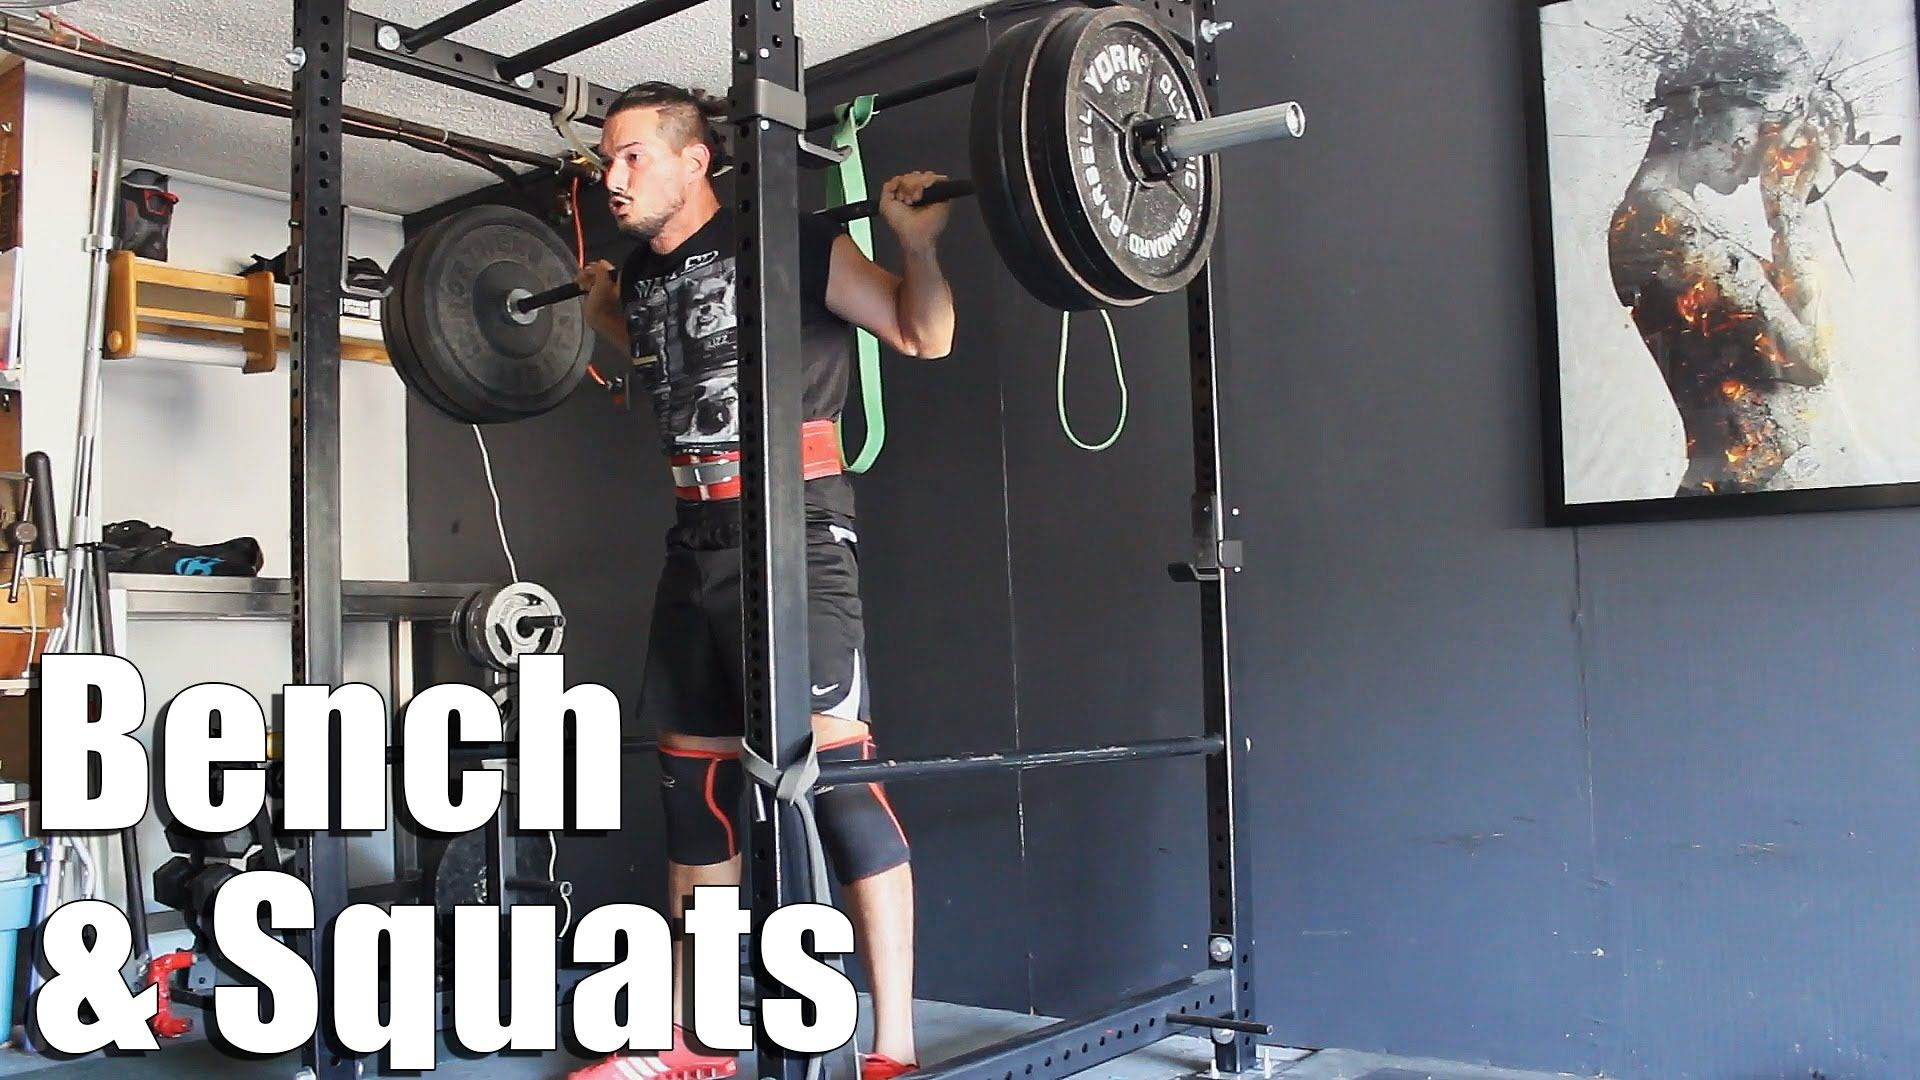 Yesterday S Benchpress Squat Session Worked To 3x5 225lbs 102kg Bench 2x3 405lbs 184kg Squats Followed With Some Deli Squats Bench Press Locker Storage